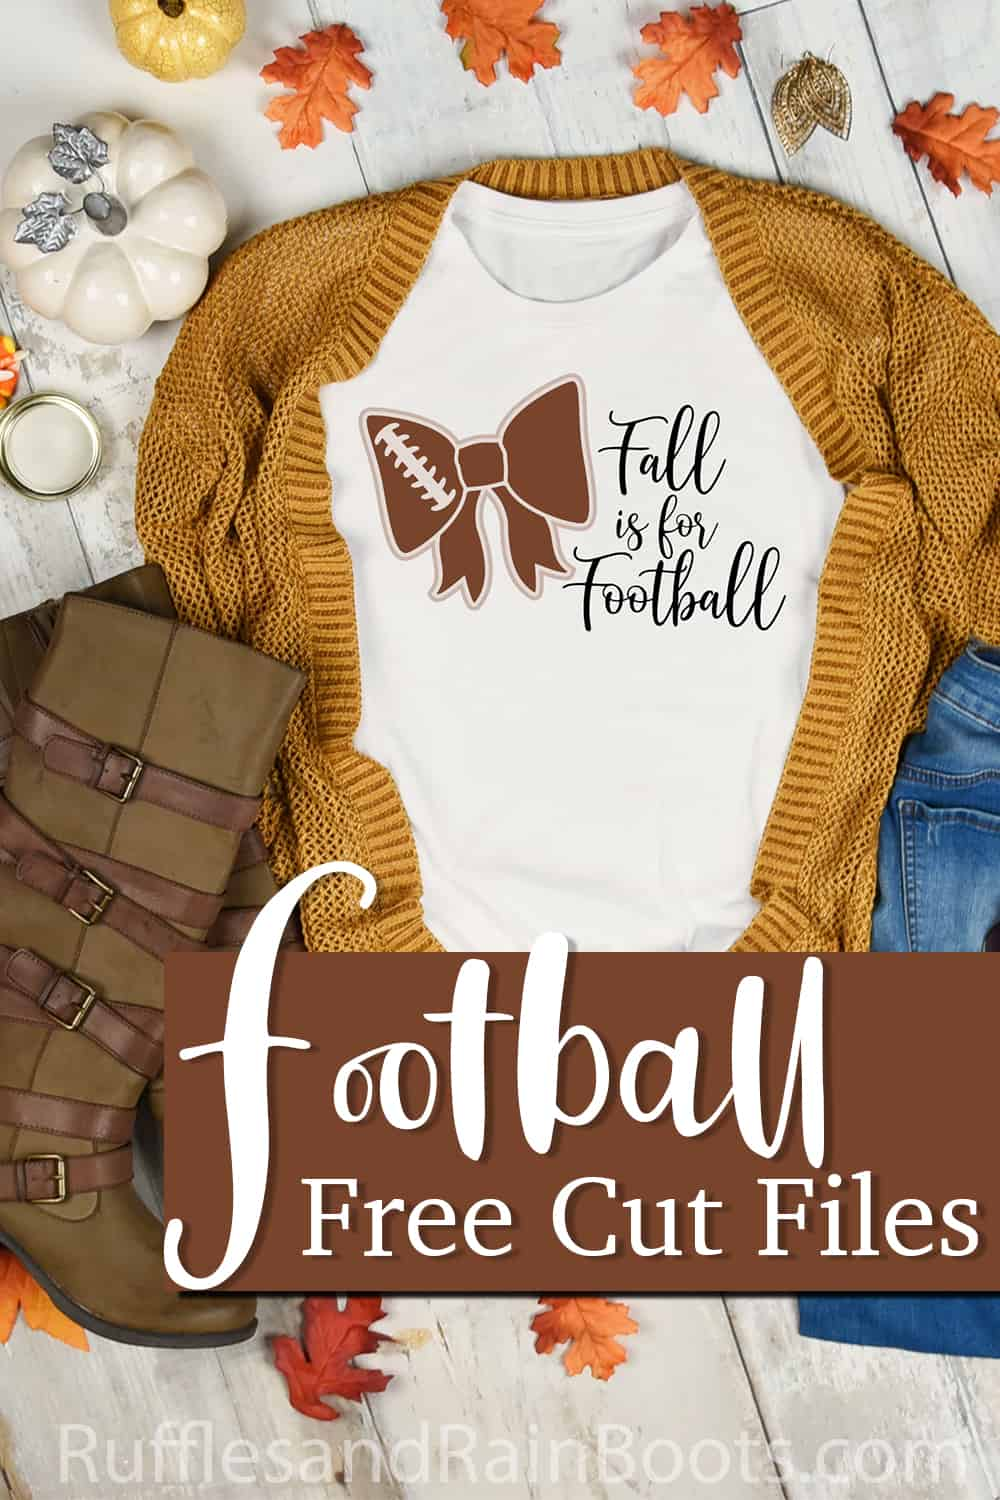 white t-shirt with a fall cut file on it with a sweater and boots with text which reads football free cut files